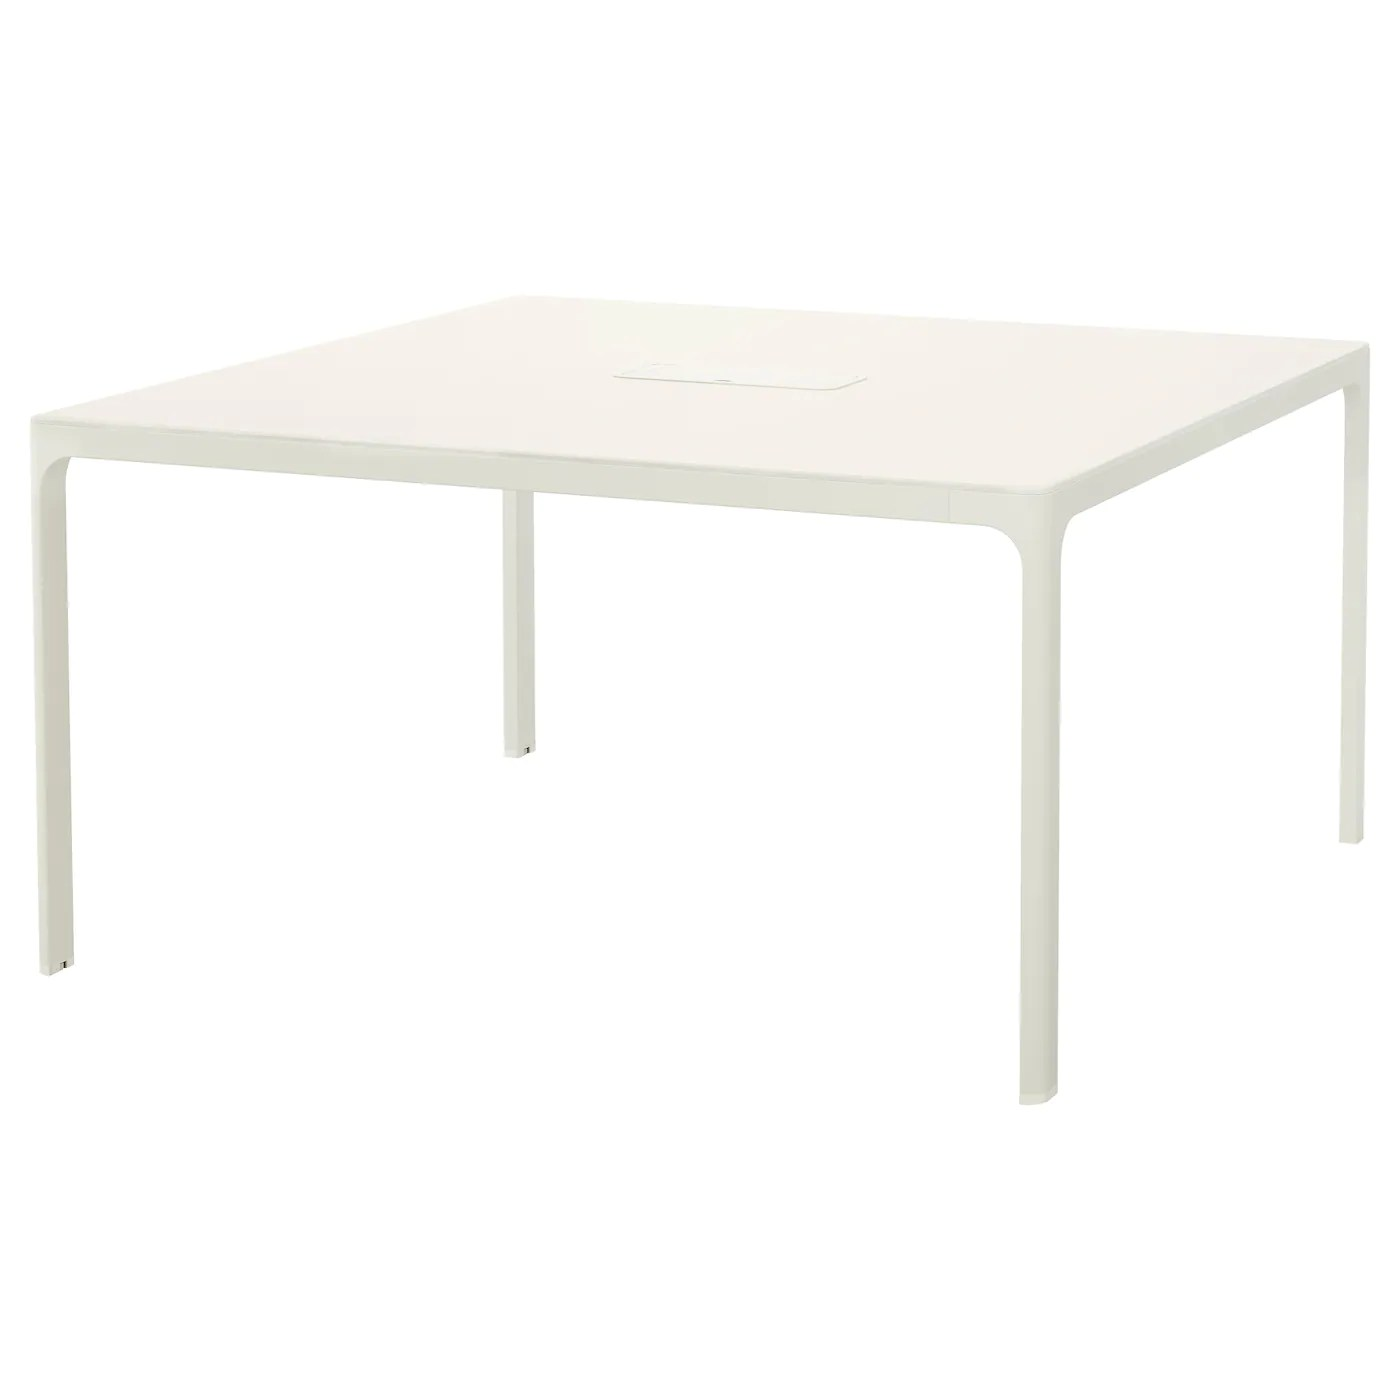 Table Carree Ikea Galant Storage Combination With Drawers White 160 X 160 Cm Ikea